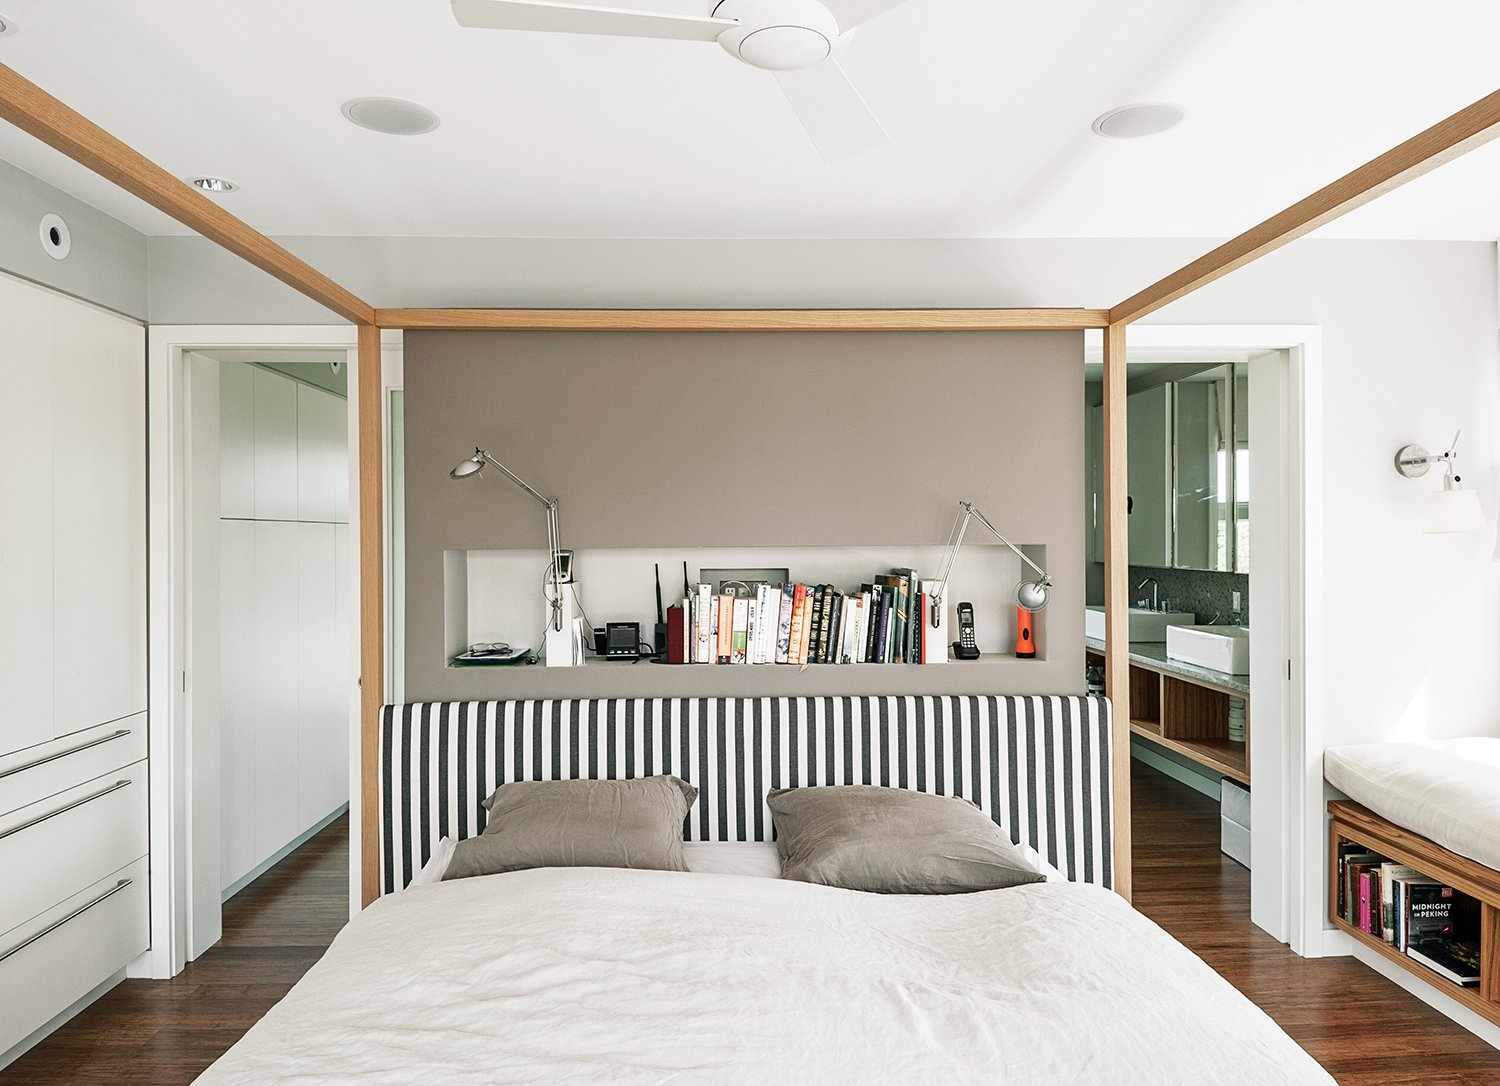 An Alcova bed from B&B Italia dominates the master bedroom. A niche behind the bed holds Berenice wall lamps by Luceplan, and the walls are painted in Cornforth White and Charleston Gray from Farrow & Ball.  Photo 9 of 12 in The Soothing Sounds of Nature Fill Up This Island Prefab